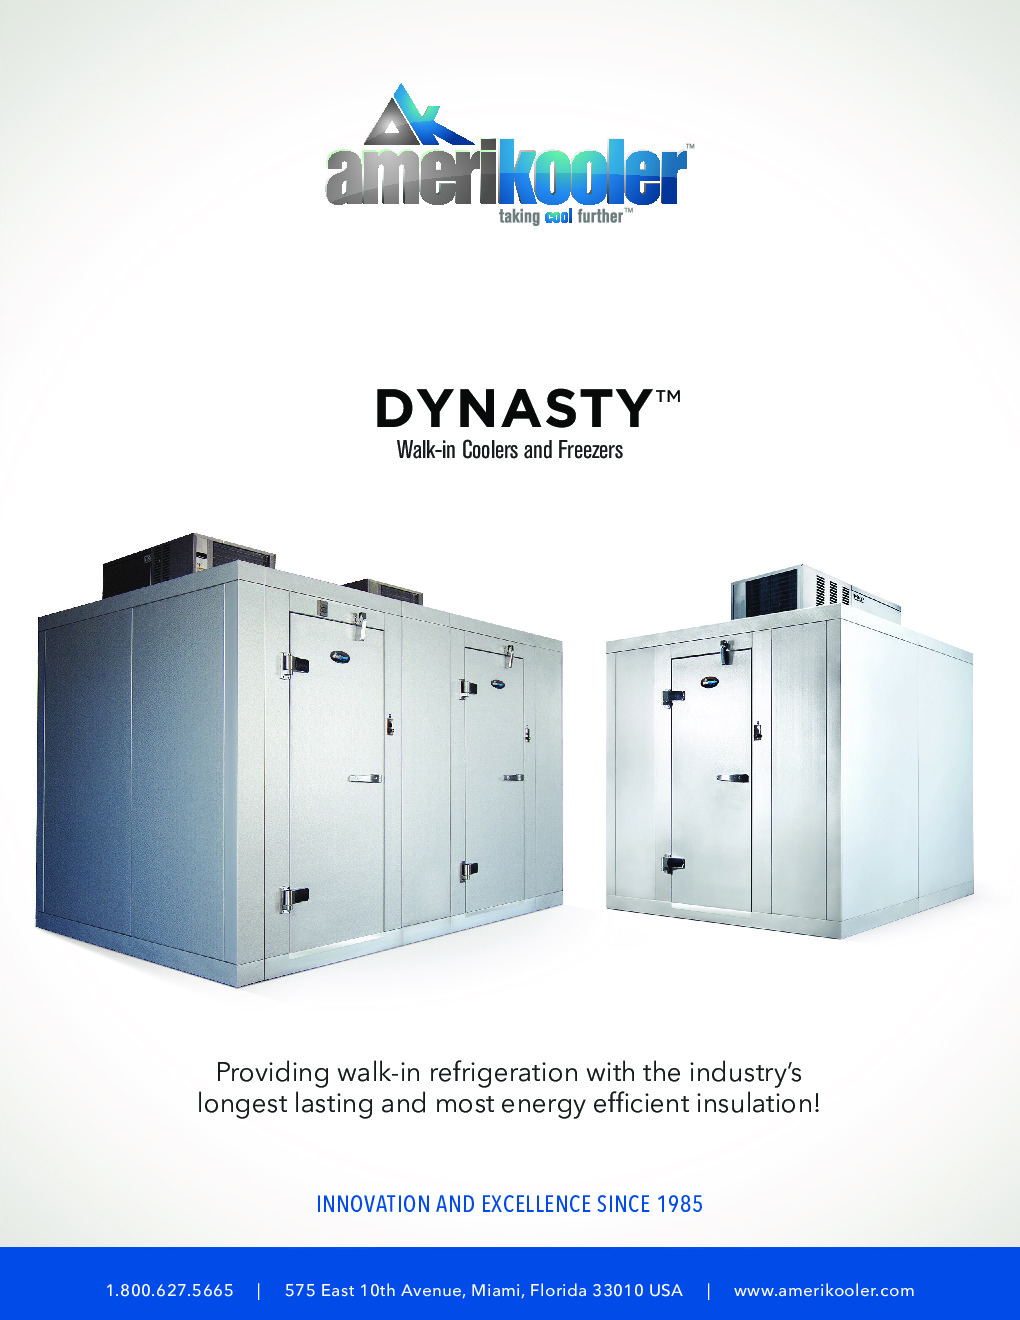 AmeriKooler DW101377F-5/8-SC 10' X 13' Walk-In Cooler, 8' L Cooler with Floor and 5' L Freezer, Self Contained